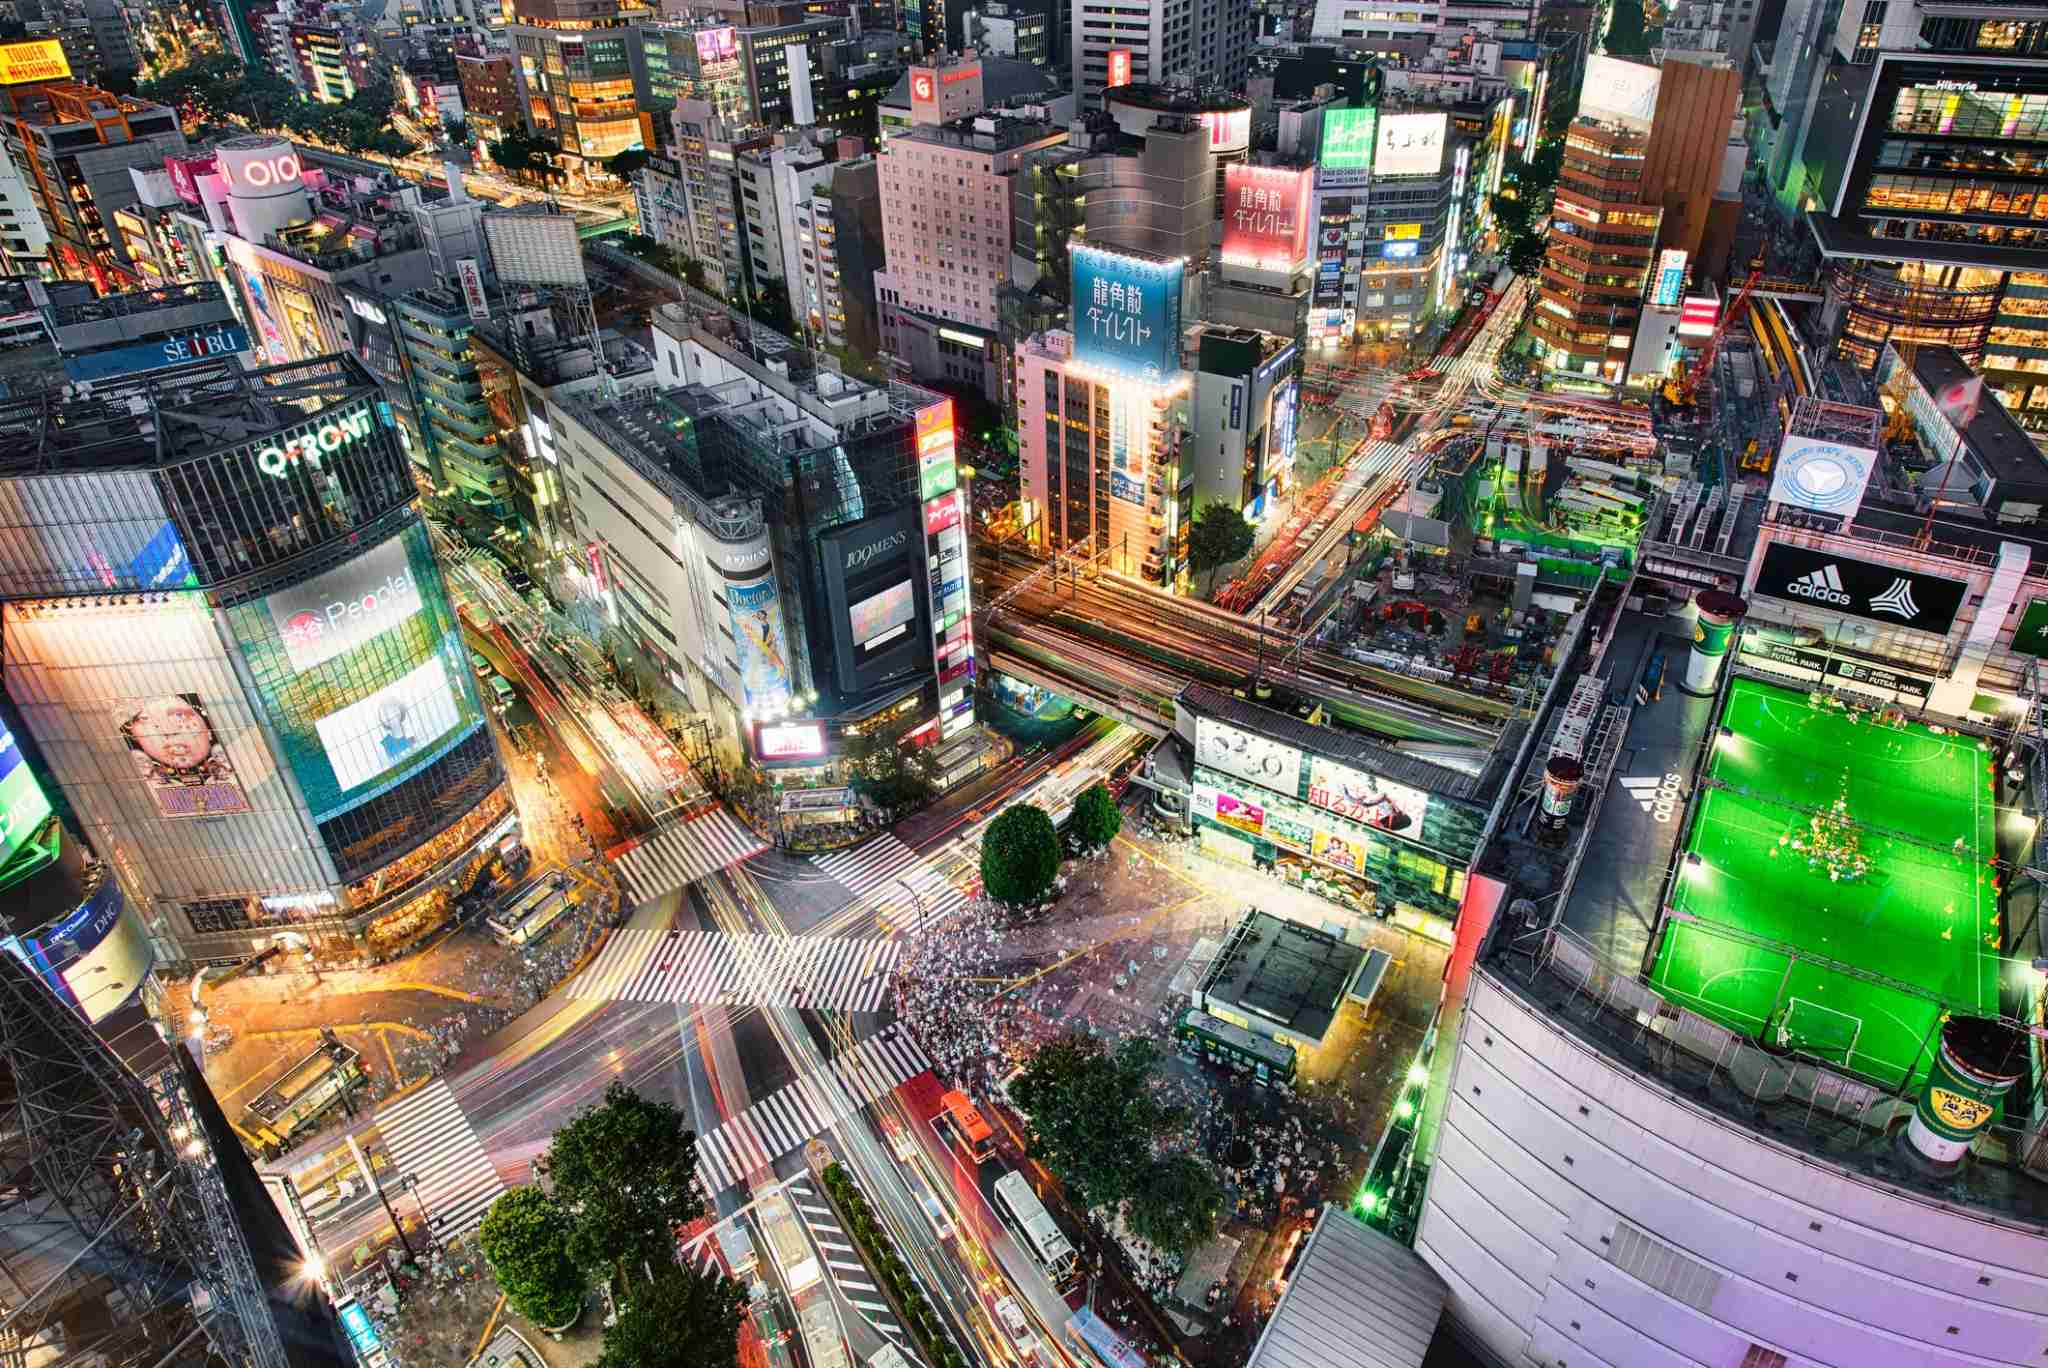 Tokyo is a fun city to visit all year long. (Photo by Duane Walker / Getty Images)